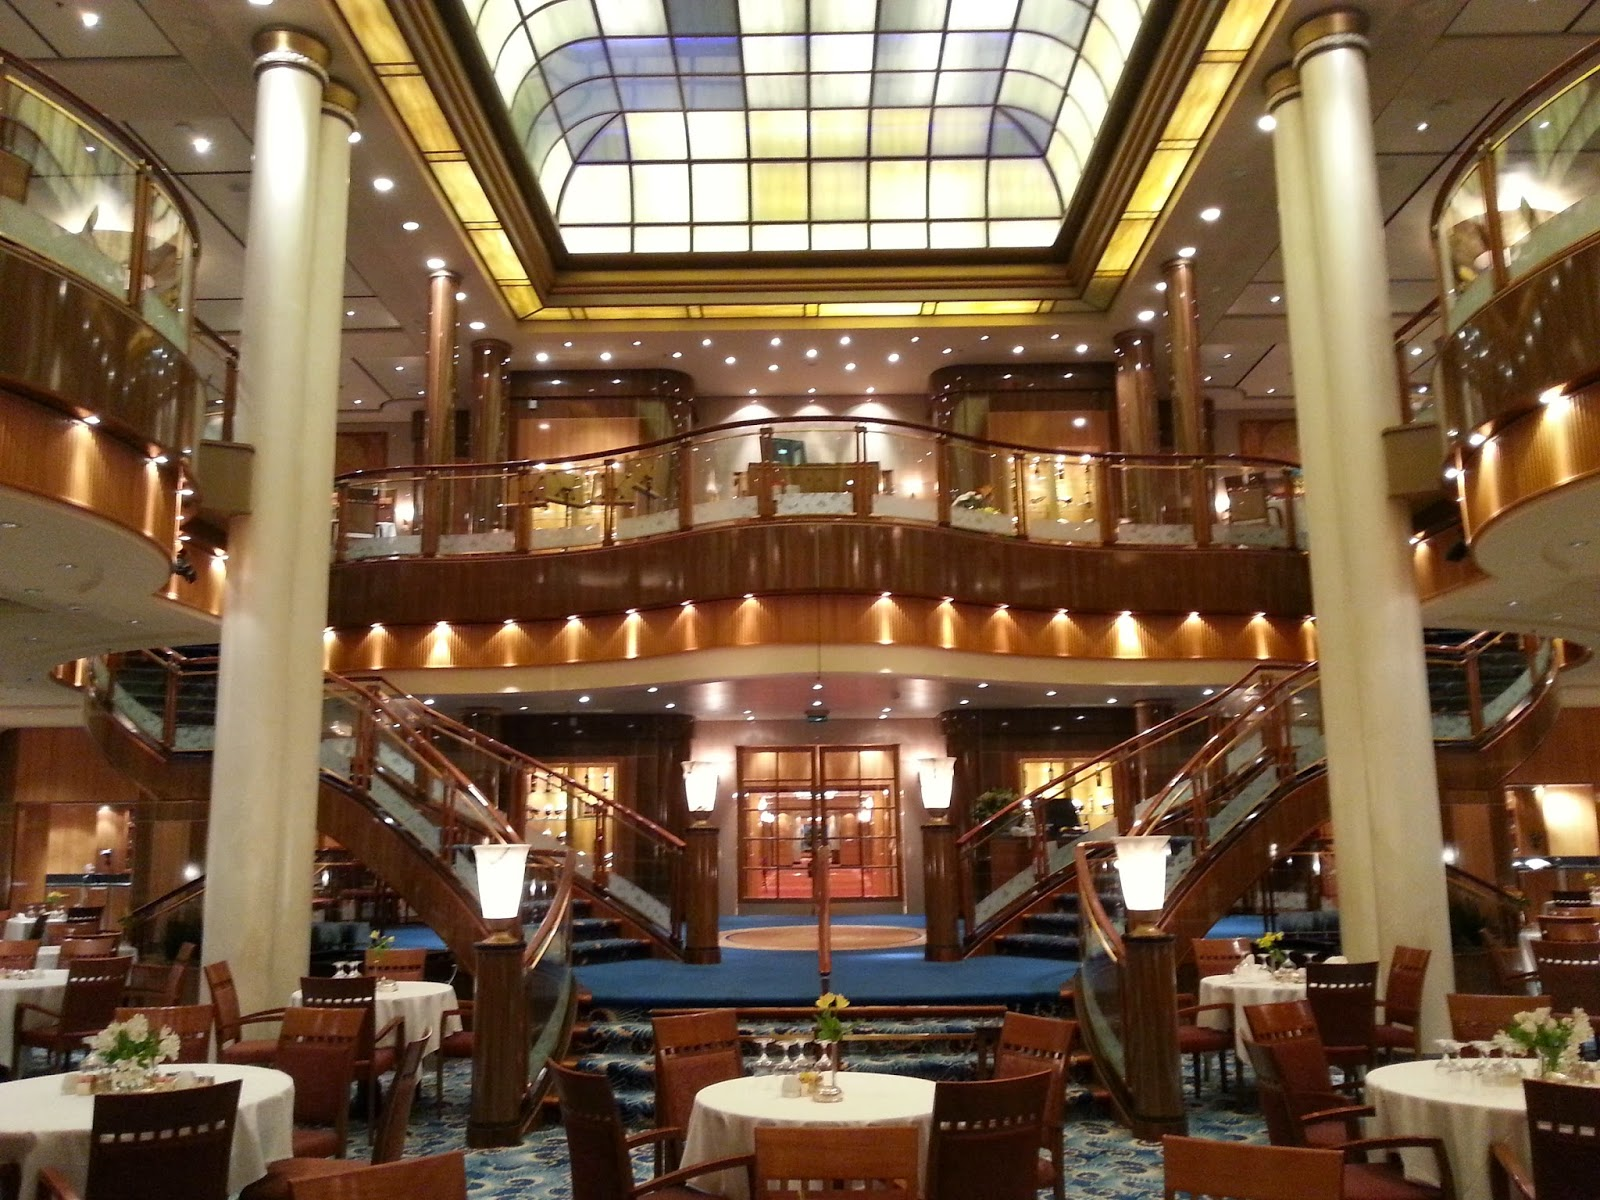 Queen Mary 2 Photo Tour And Voyage, Queen Mary 2 Main Dining Room